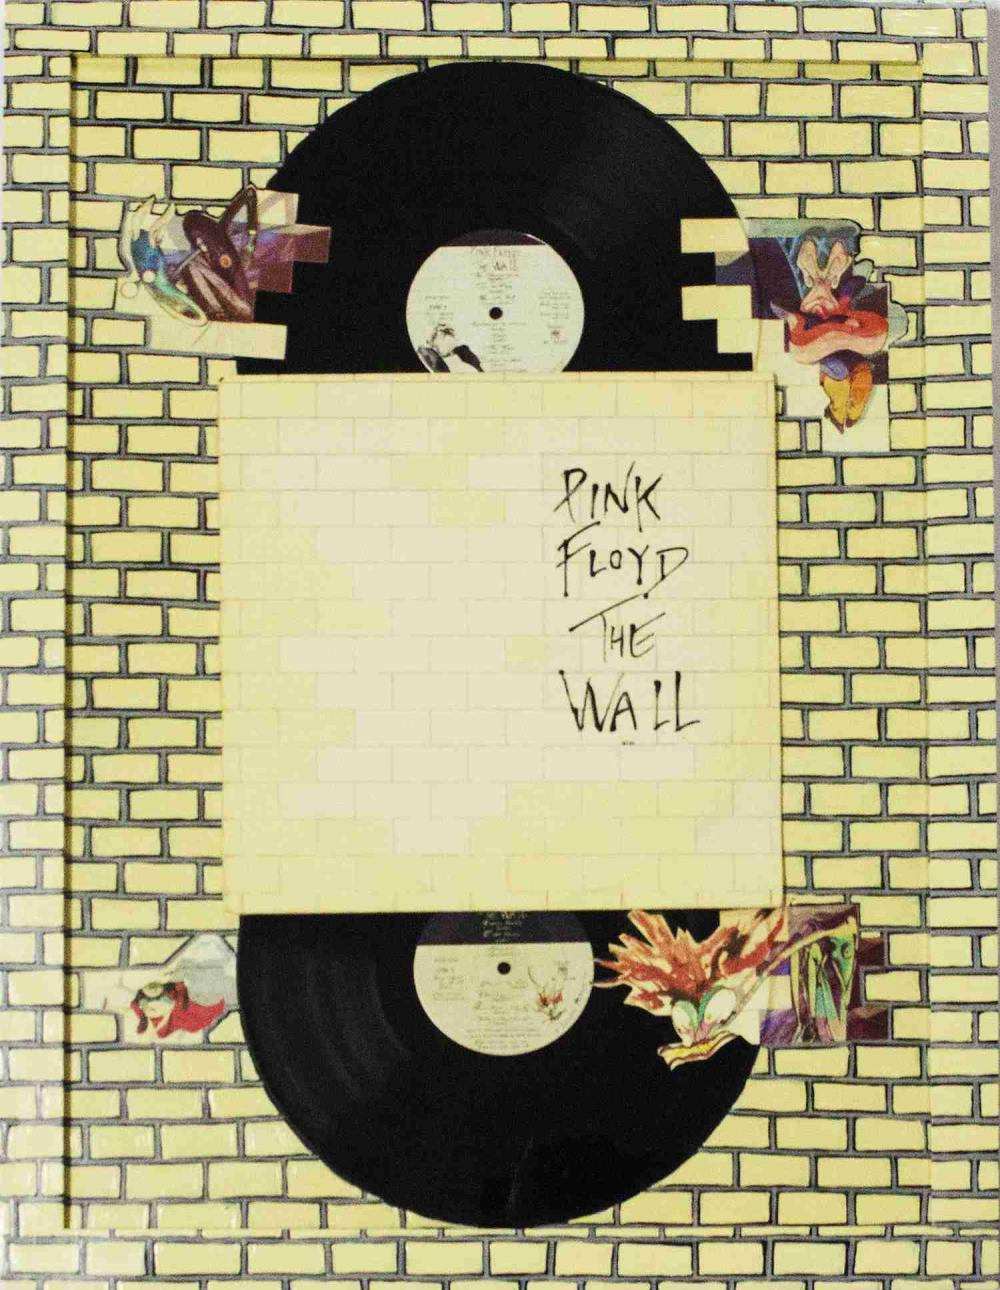 Pink Floyd The Wall Album with Hand Painted Background